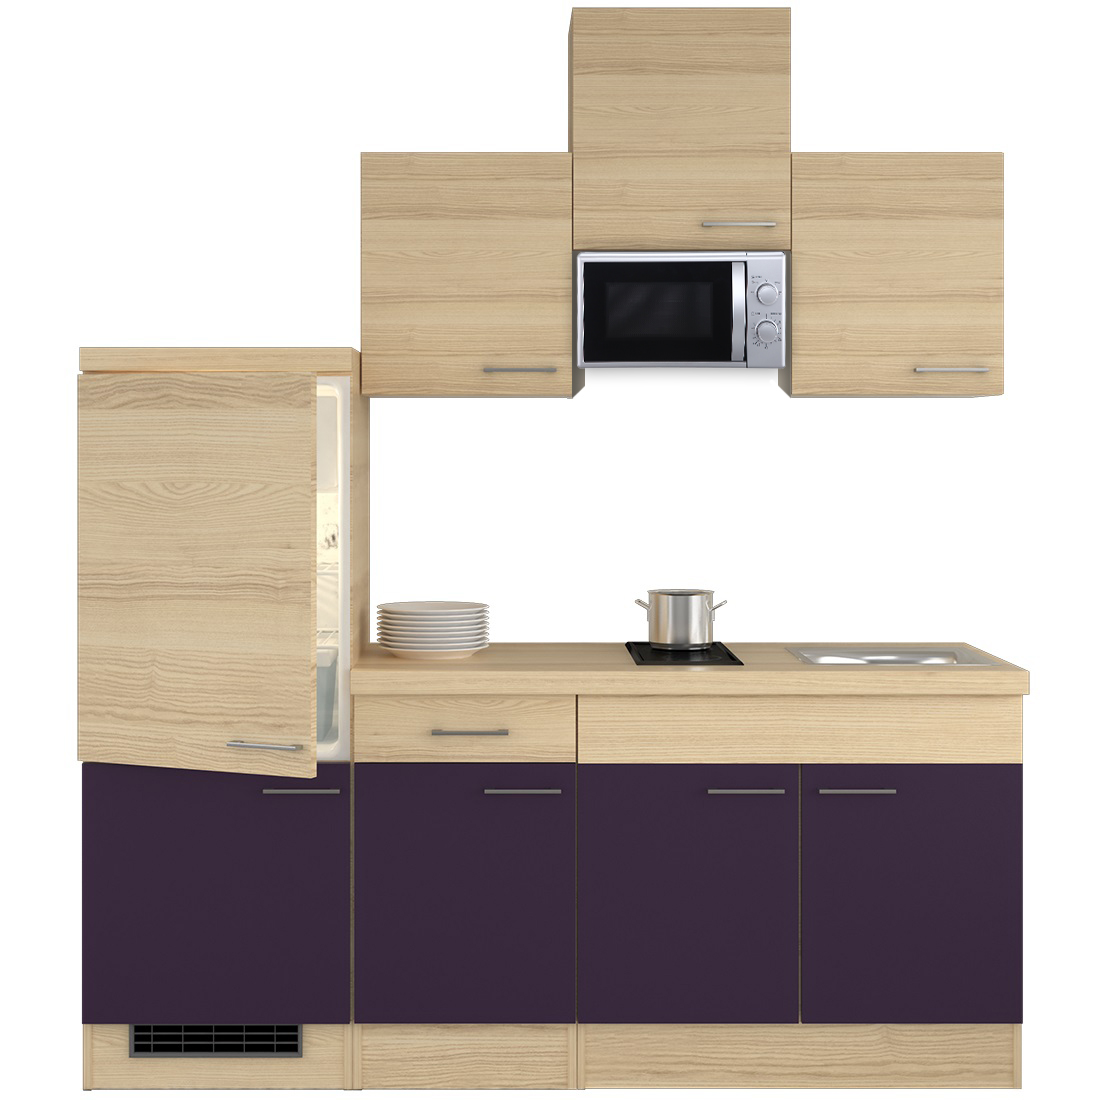 k chenzeile 210 cm aubergine akazie mit unterbau mikrowelle k hlschrank sp le zafia. Black Bedroom Furniture Sets. Home Design Ideas